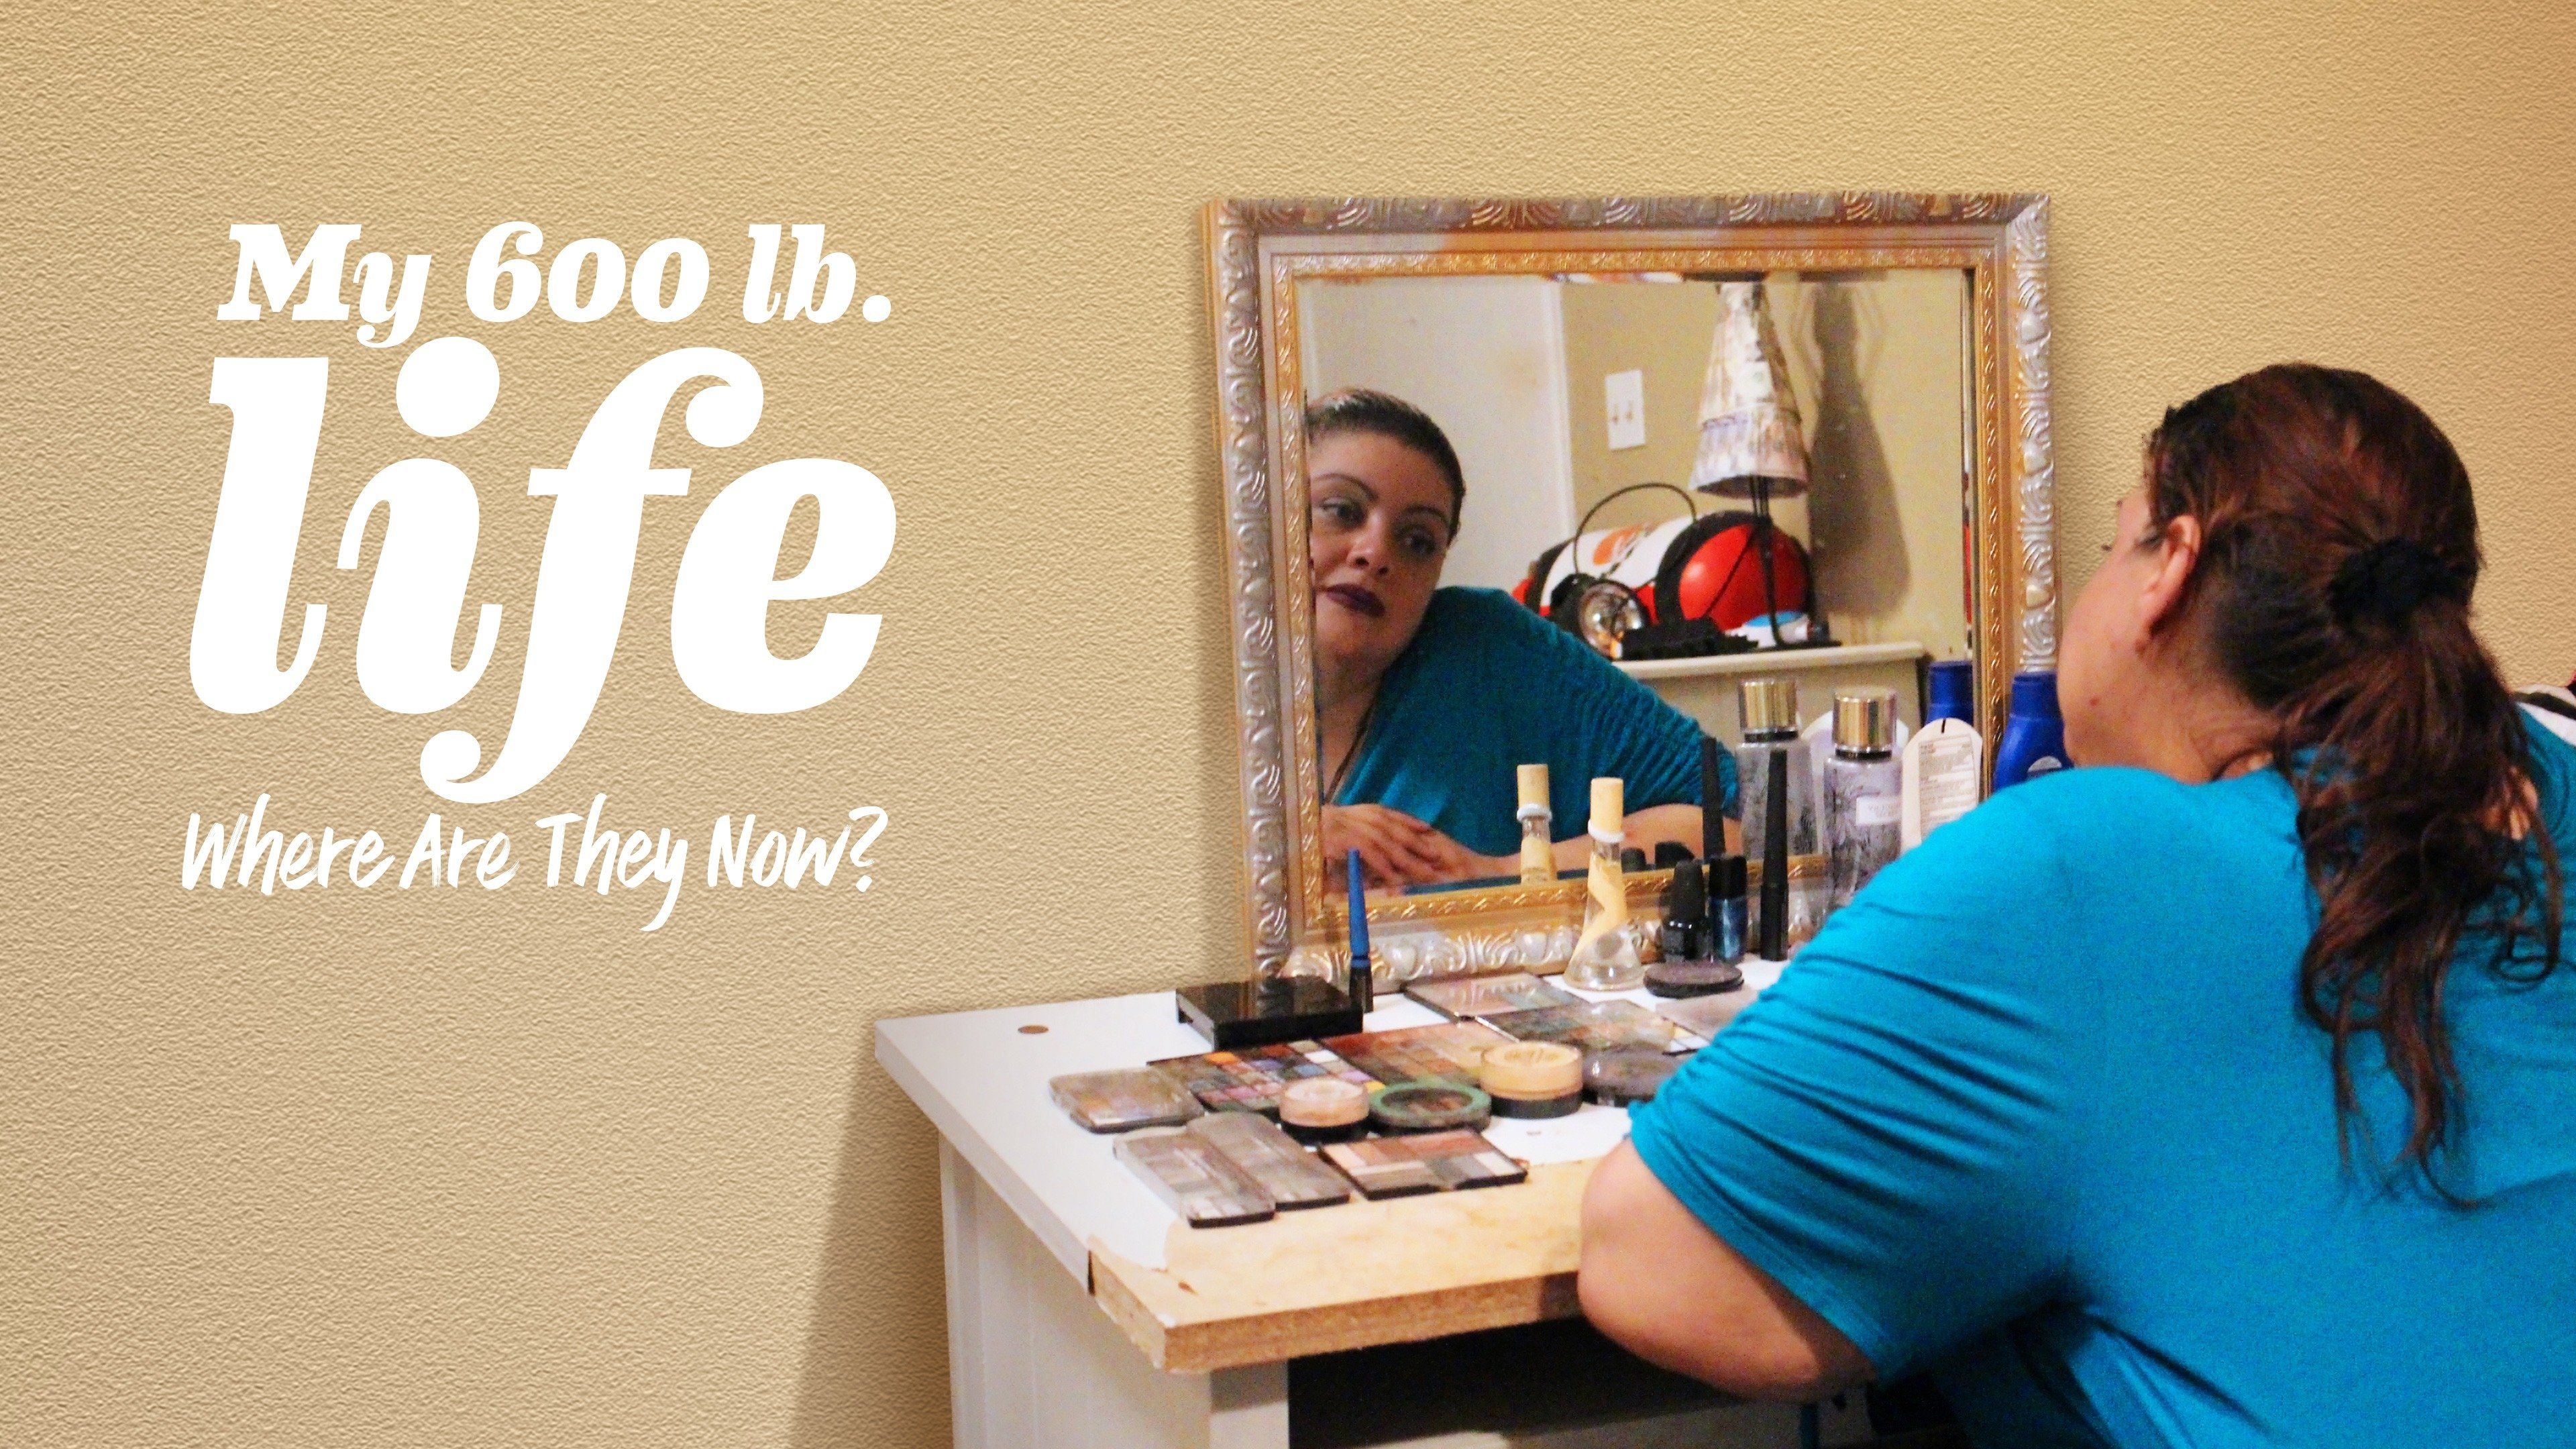 My 600-Lb. Life: Where Are They Now?